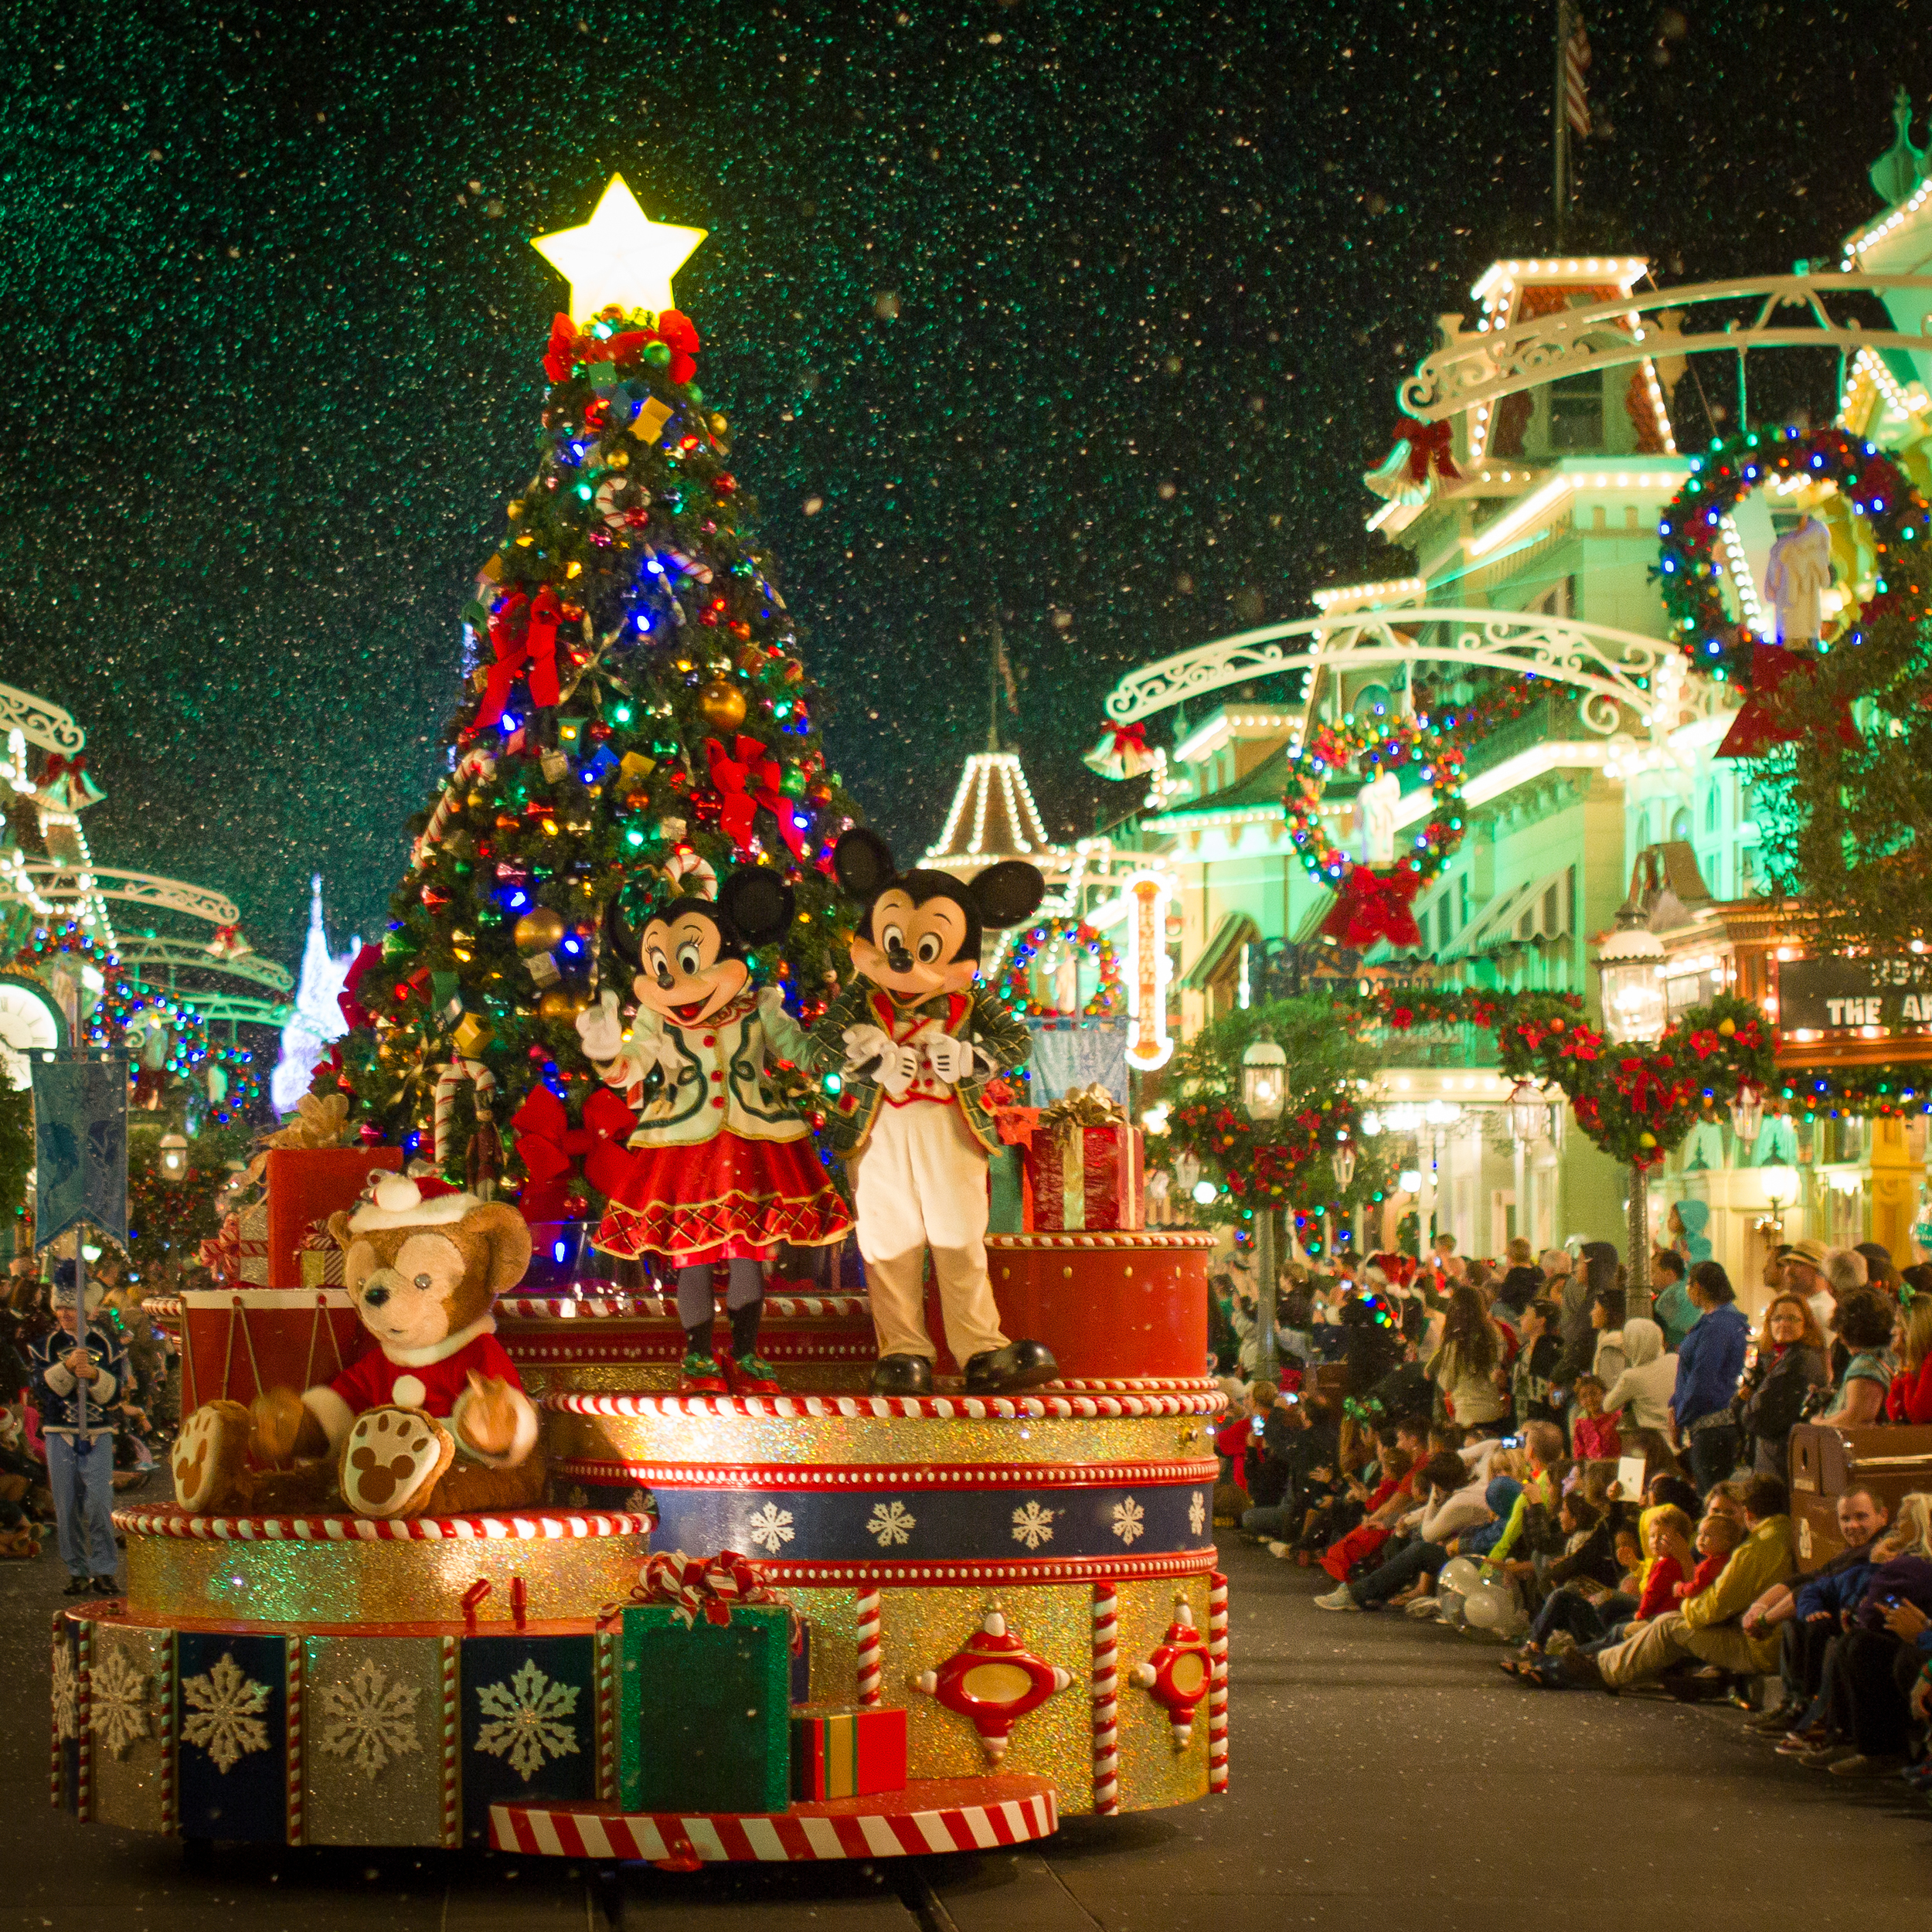 Mickey and Minnie float down Main Street during Mickey's Very Merry Christmas Party.